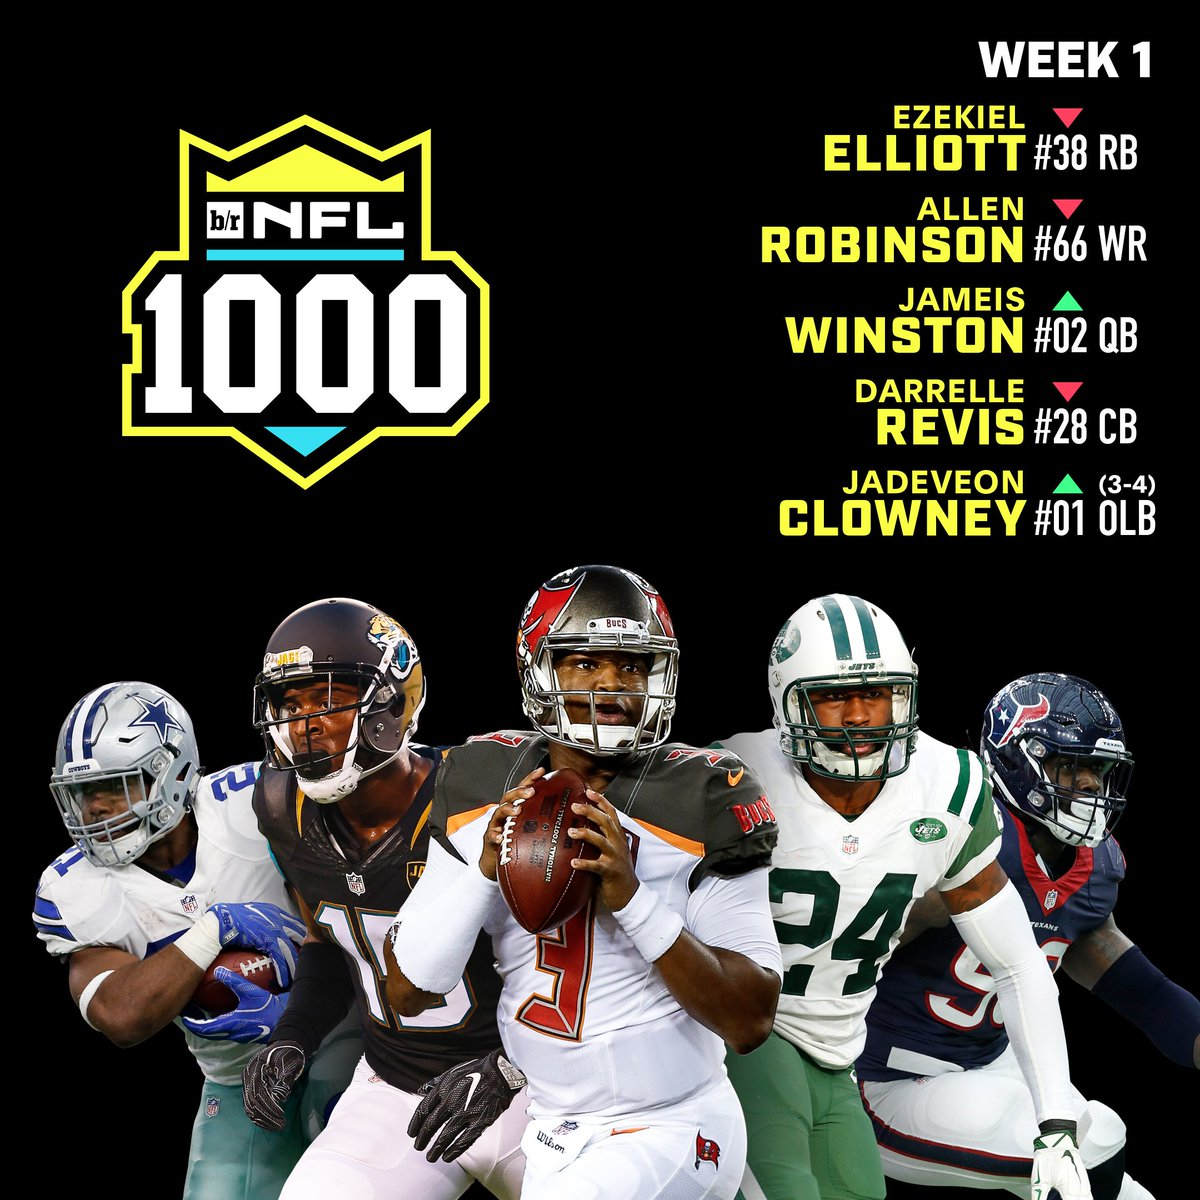 Nfl1000 Rookie Review From Week 9: NFL1000: Latest News, Breaking Headlines And Top Stories